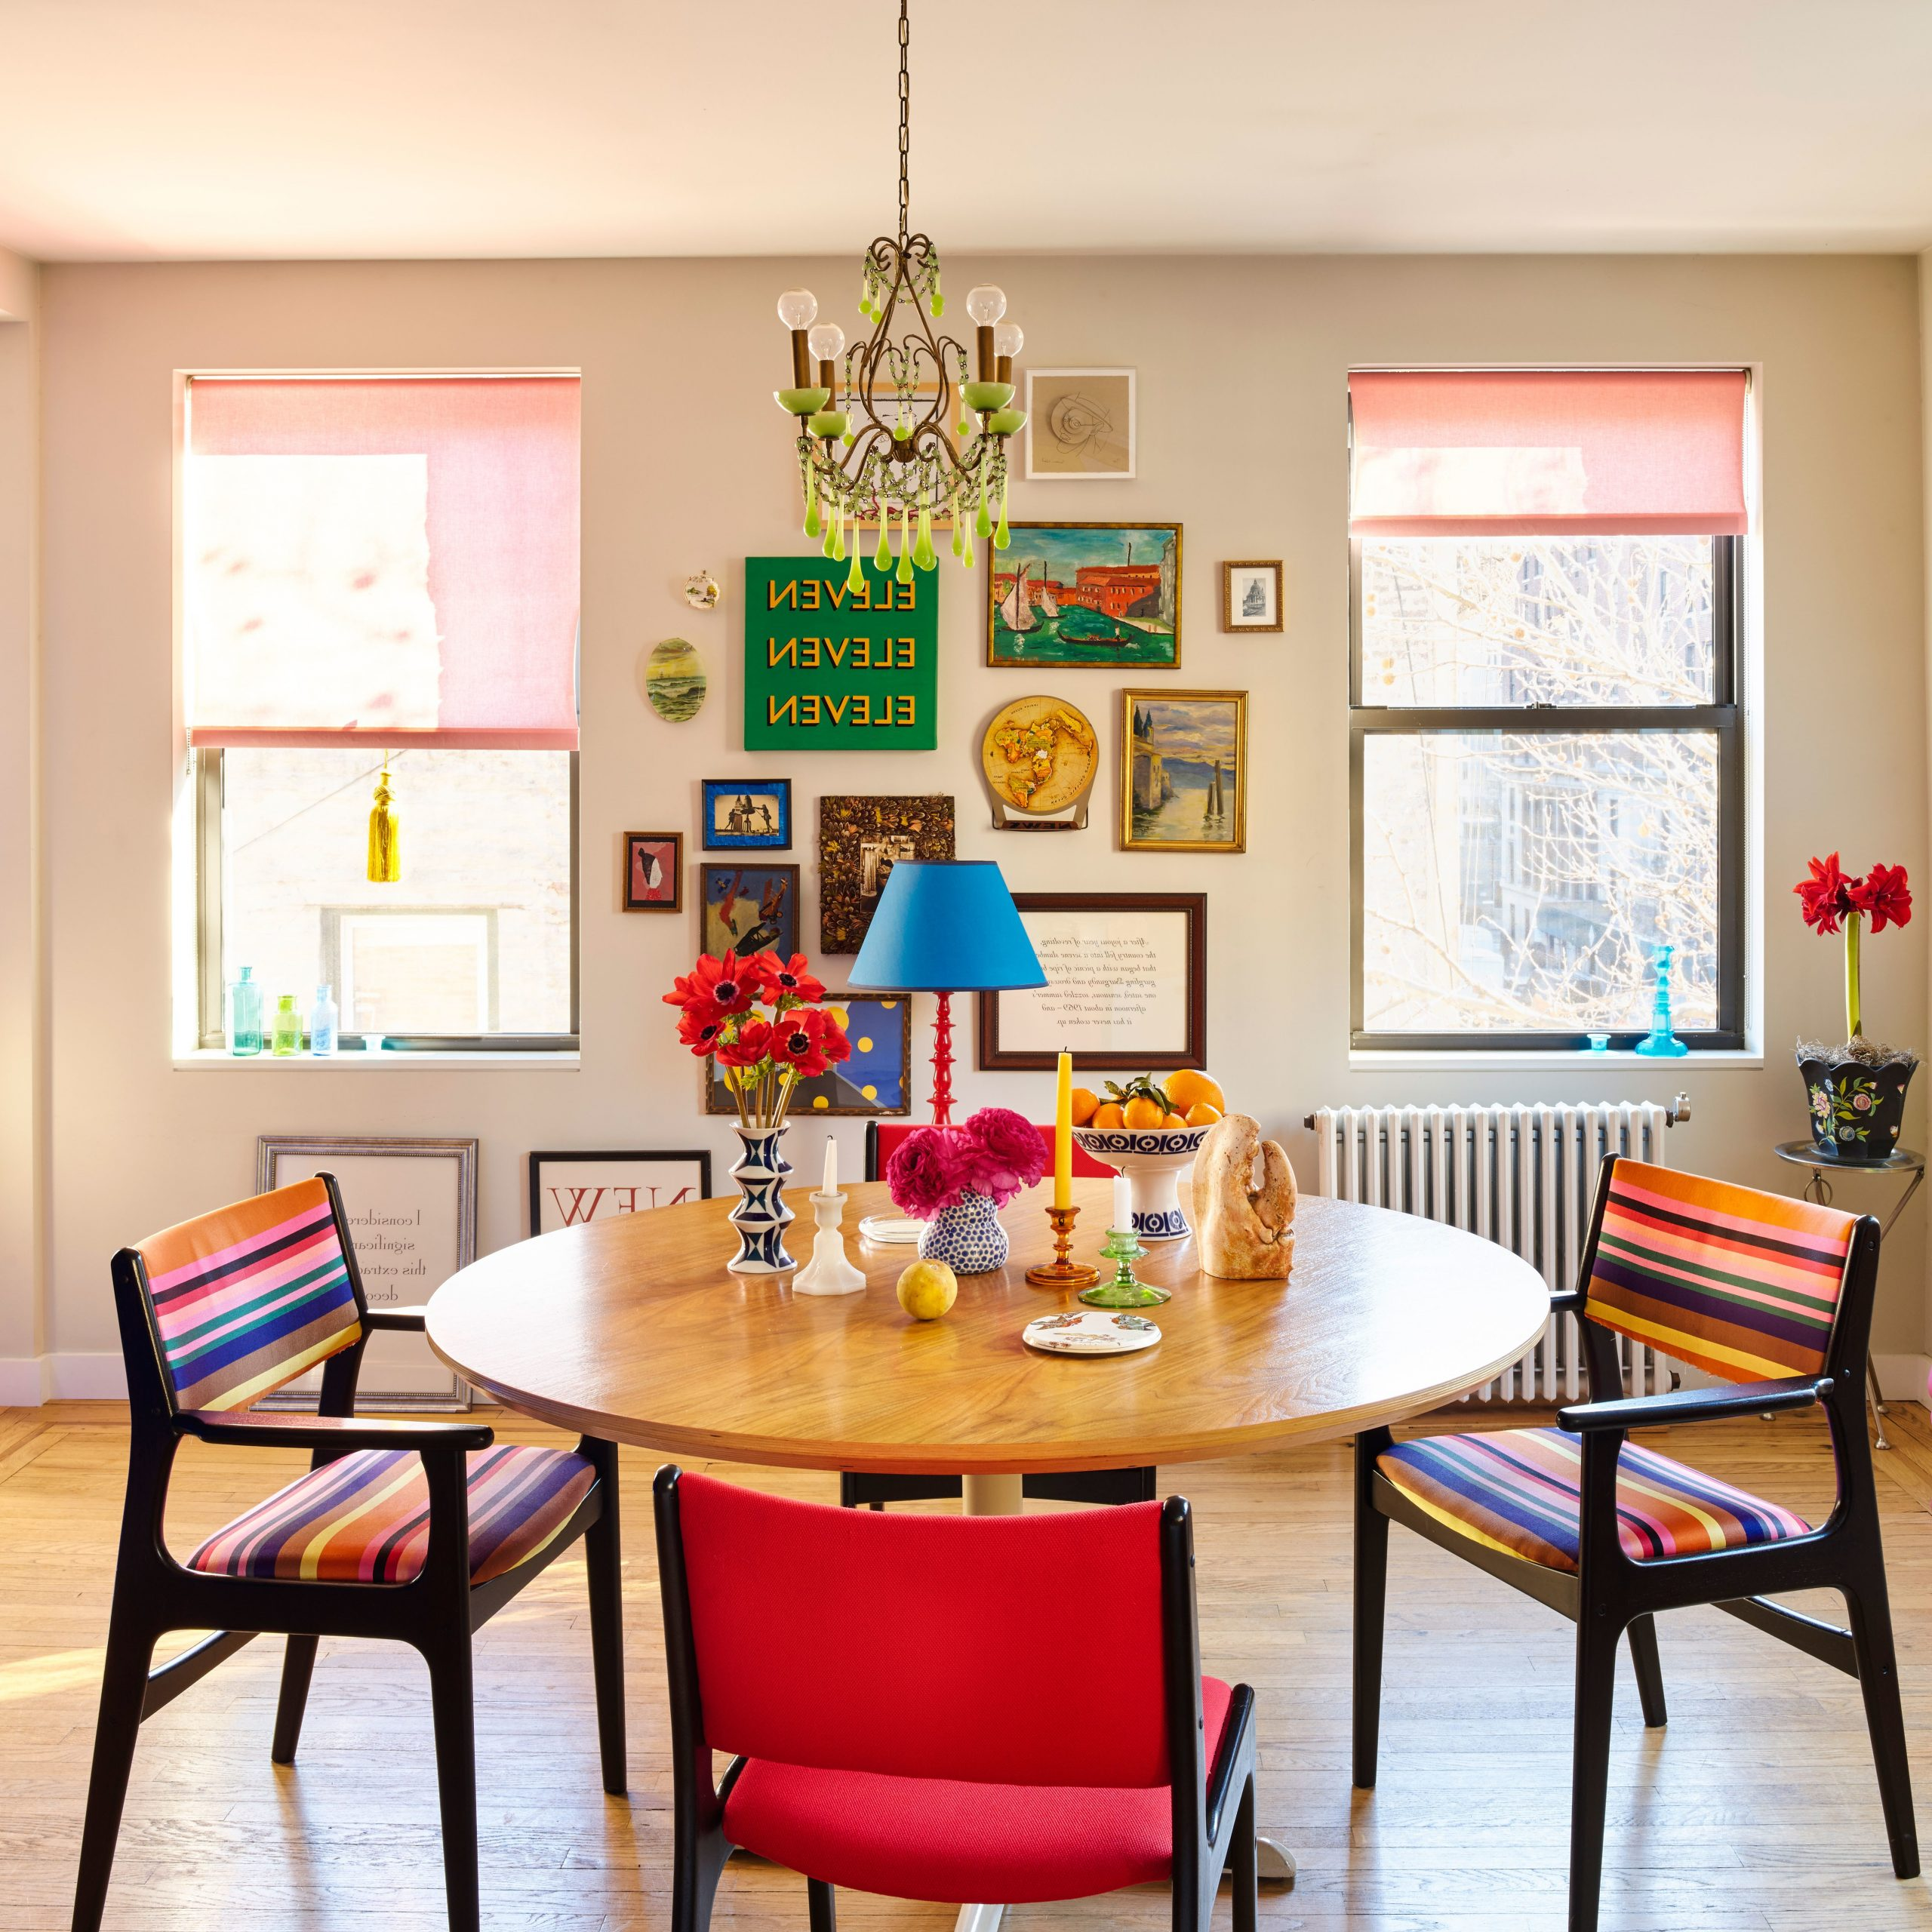 22 Dining Room Decorating Ideas With Photos (View 2 of 30)